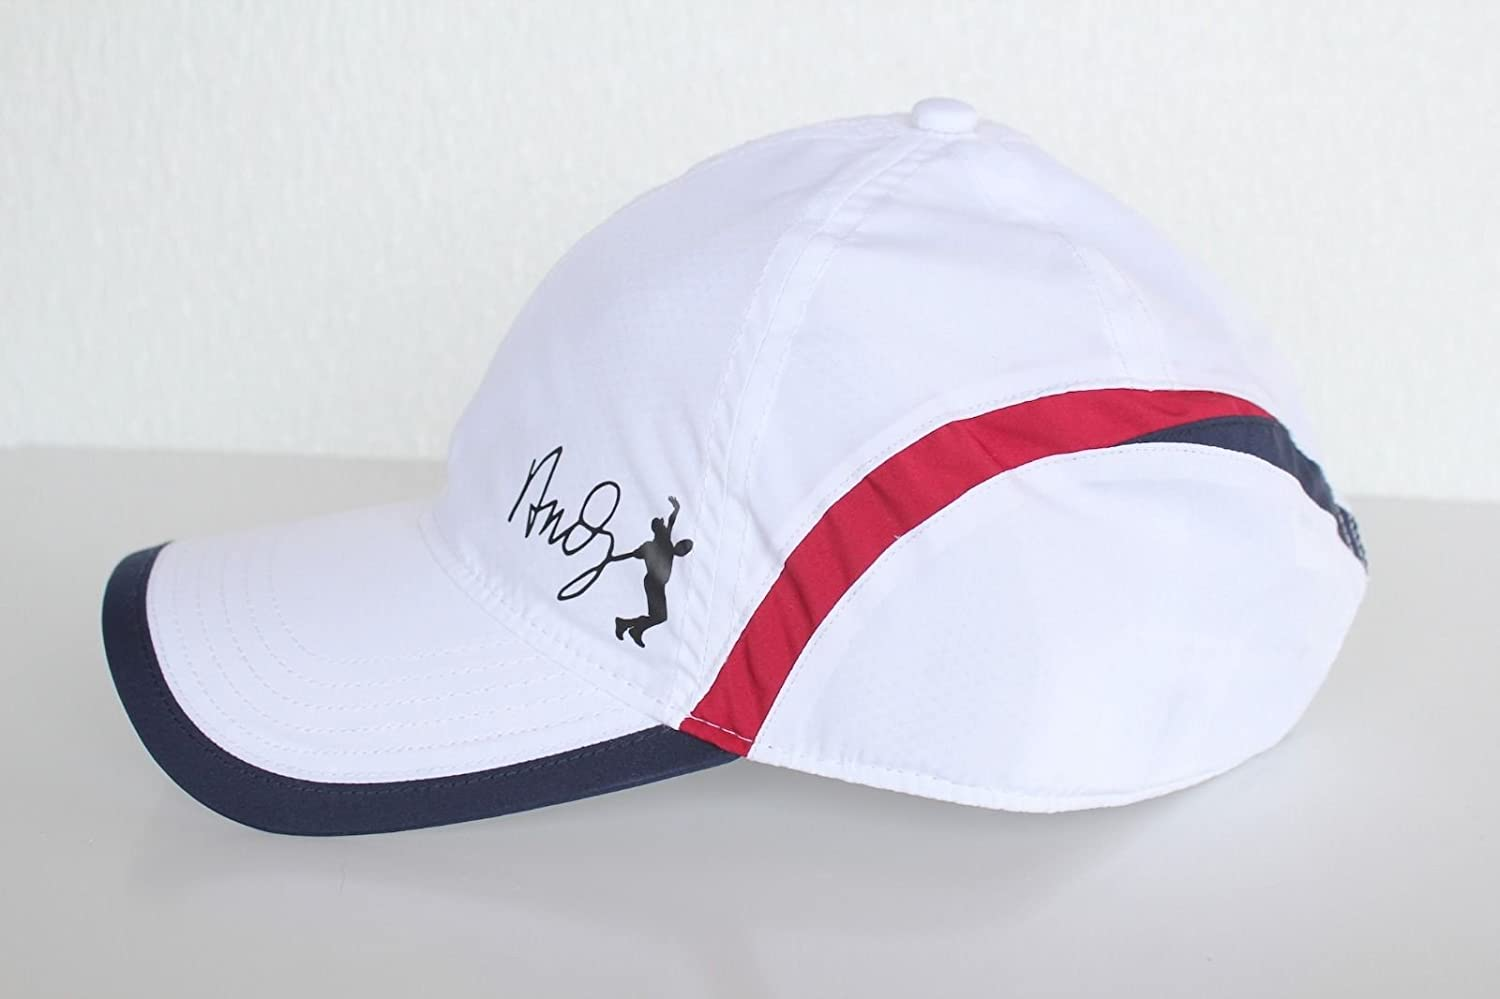 2bc73eb1 Lacoste Men's Green Croc Poly Andy Roddick Cap Hat White RK4386 ...